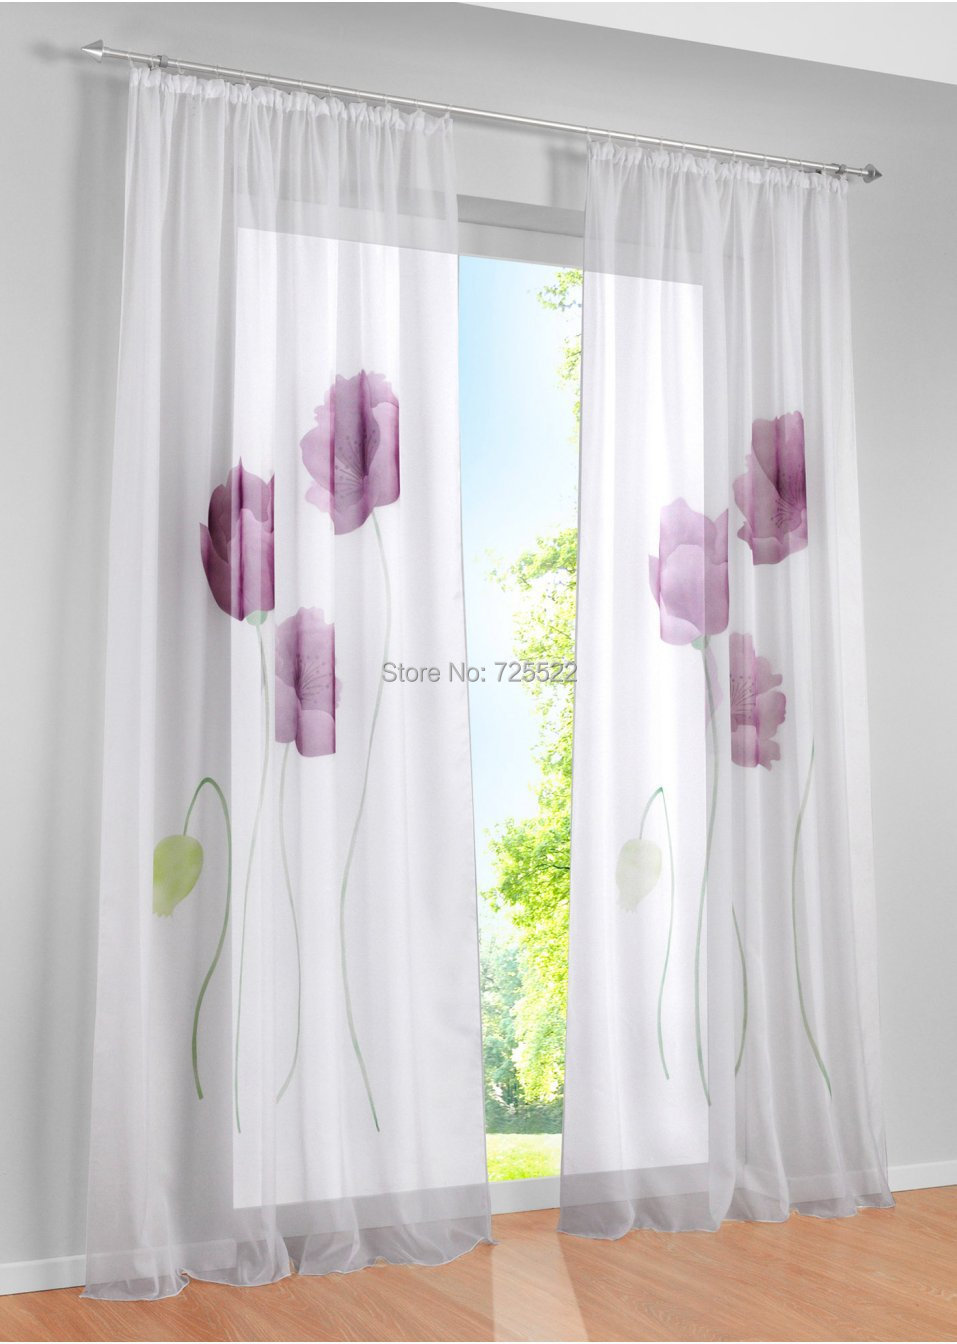 beautiful curtain window screening Balcony Sheer curtains for Living ...